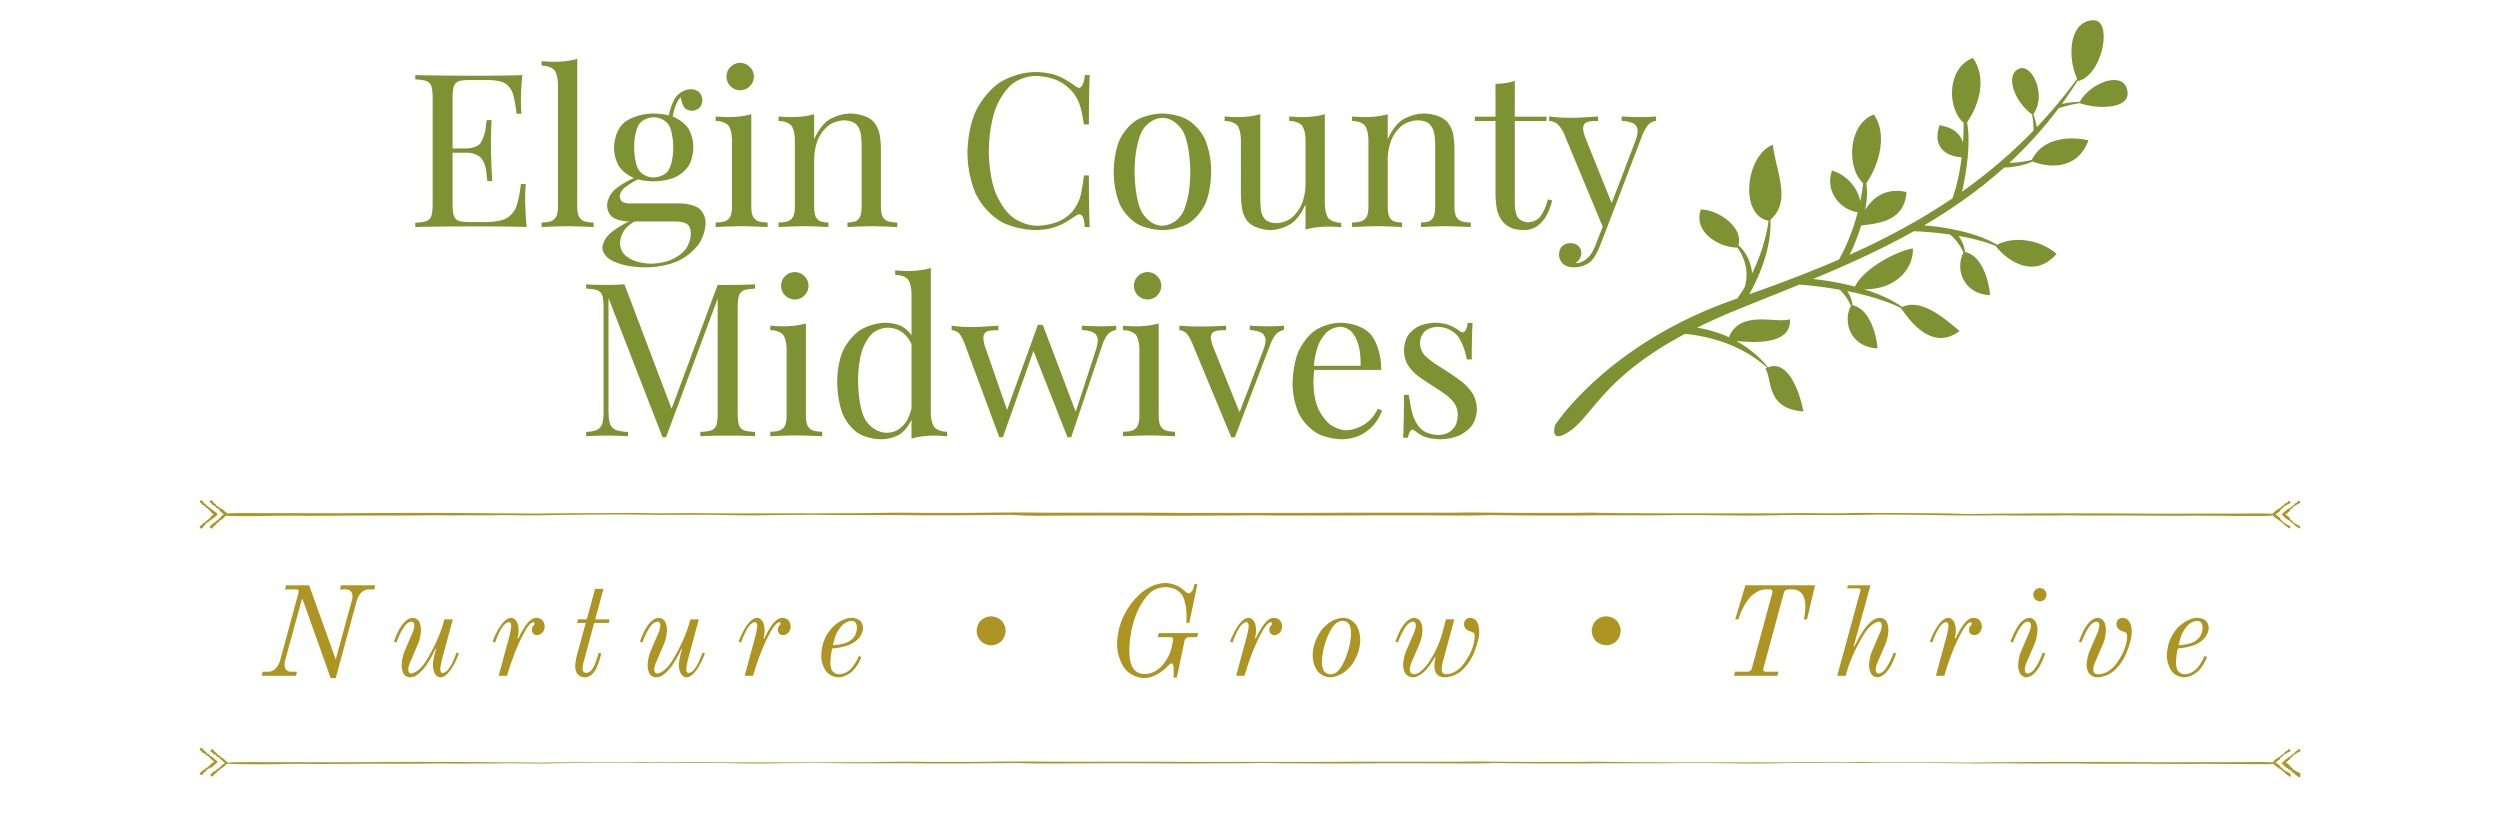 Elgin County Midwives